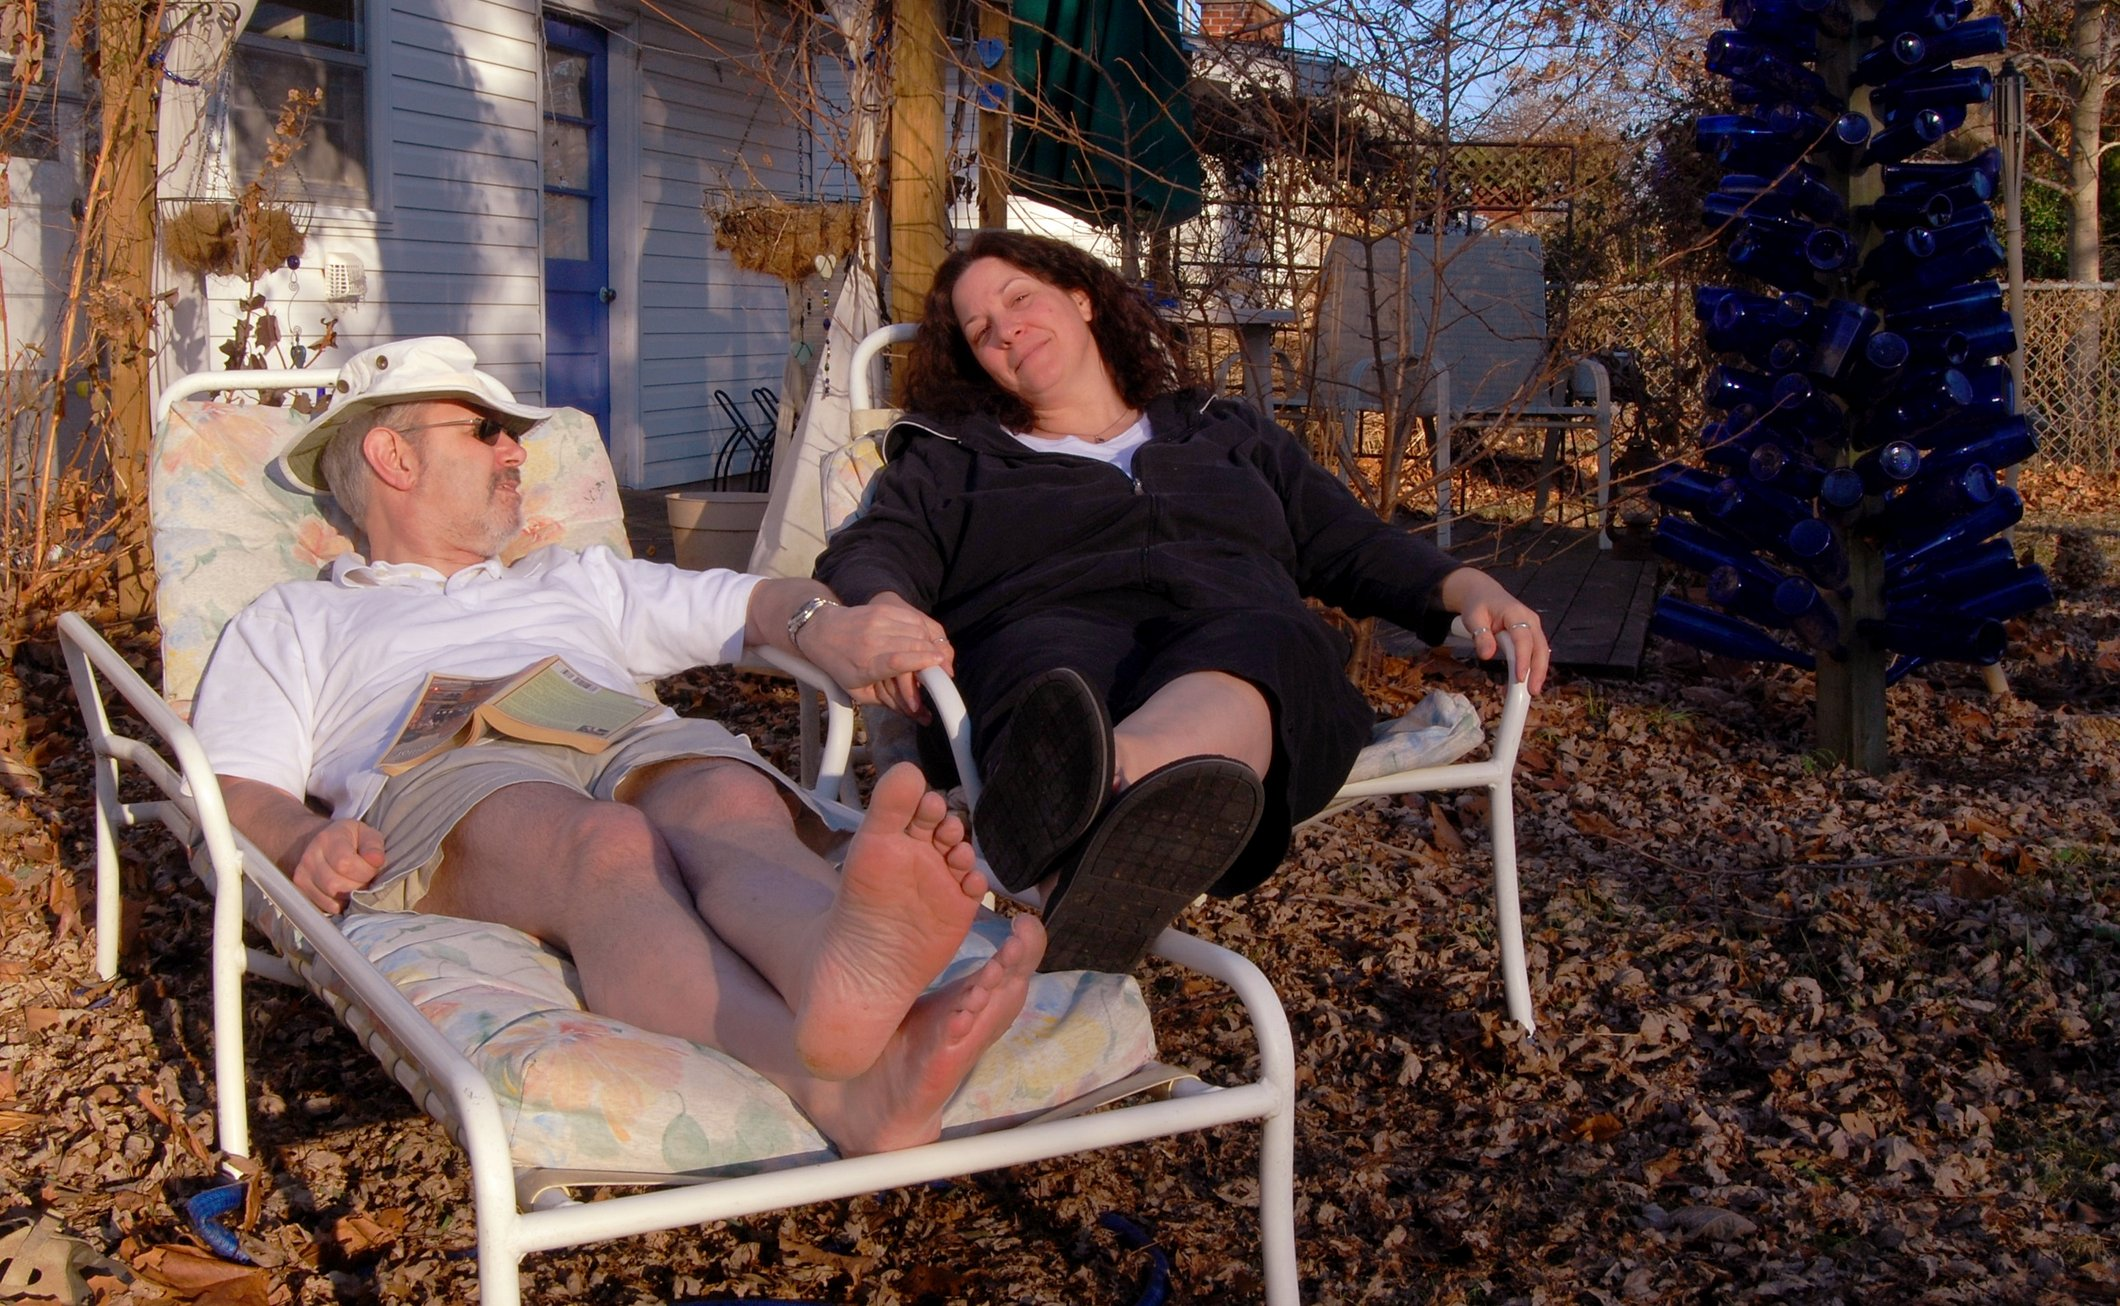 Gary Allman and Ginger Davis enjoying a warm day in January 2009